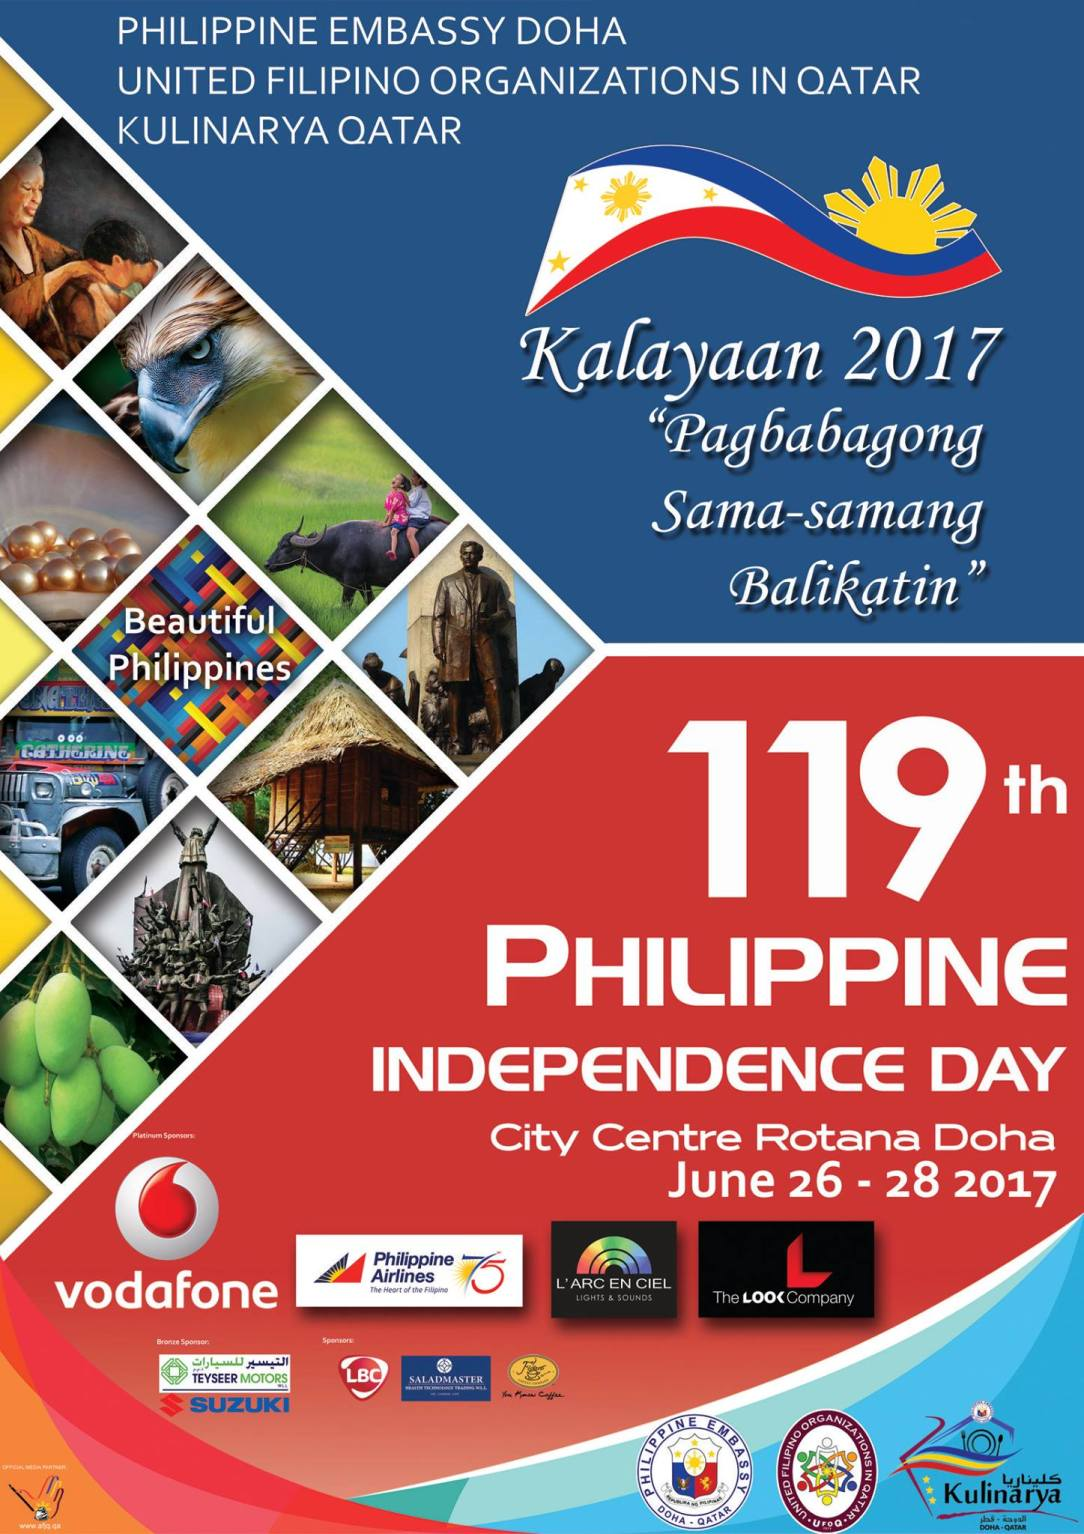 PIDC 2017 PRIMER: Philippine Independence Day Celebration in